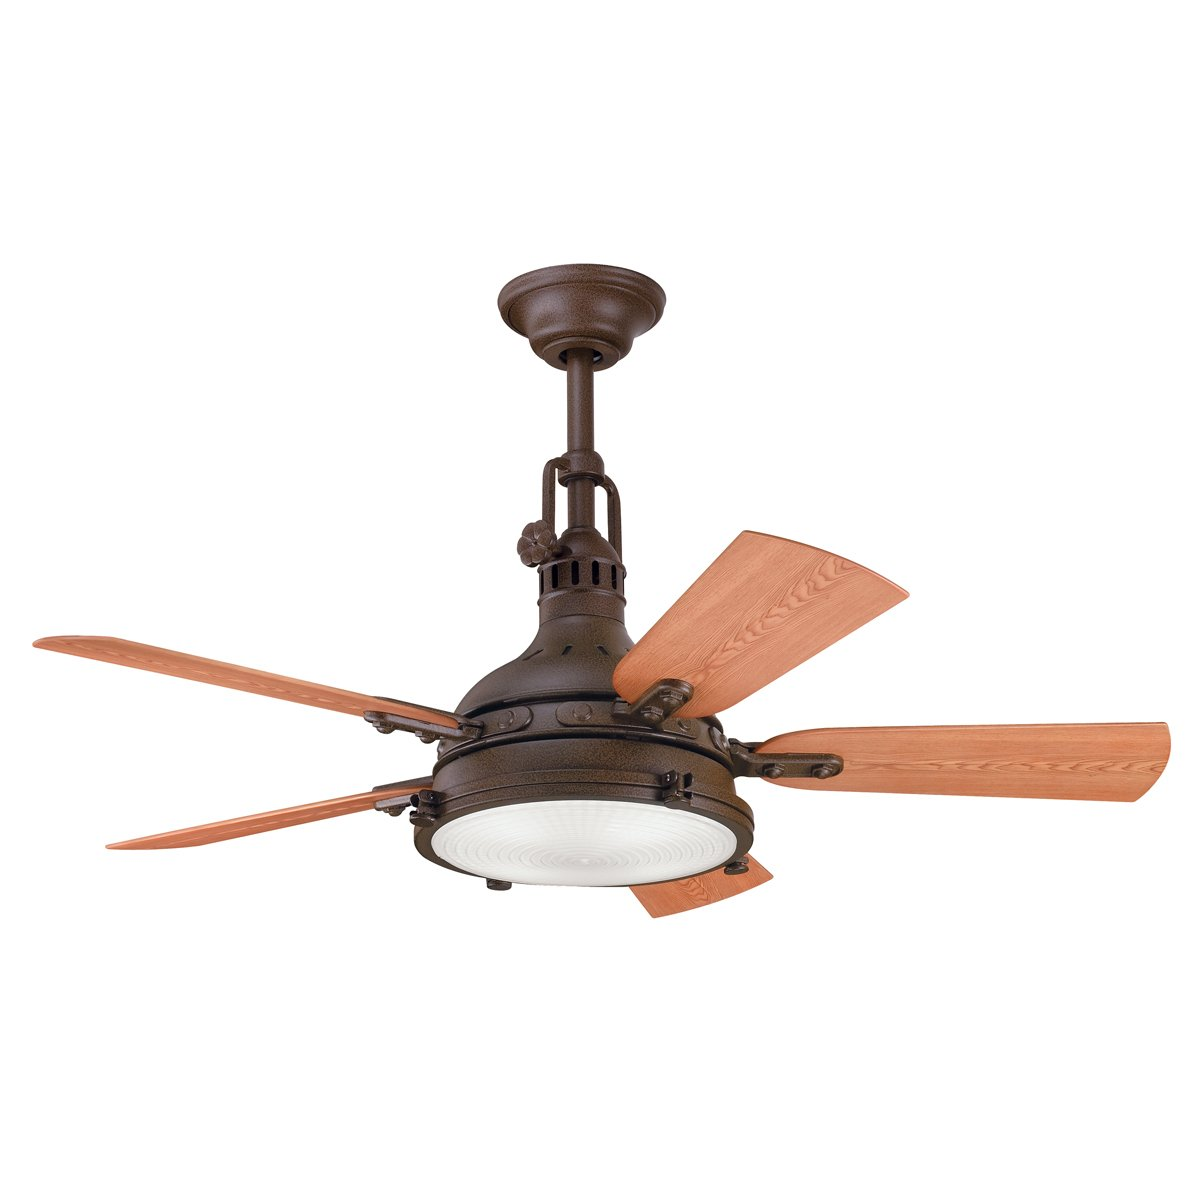 Outdoor Patio Fans With Lights Part - 31: Kichler 310101WCP 44`` Ceiling Fan - Outdoor Ceiling Fan With Light -  Amazon.com